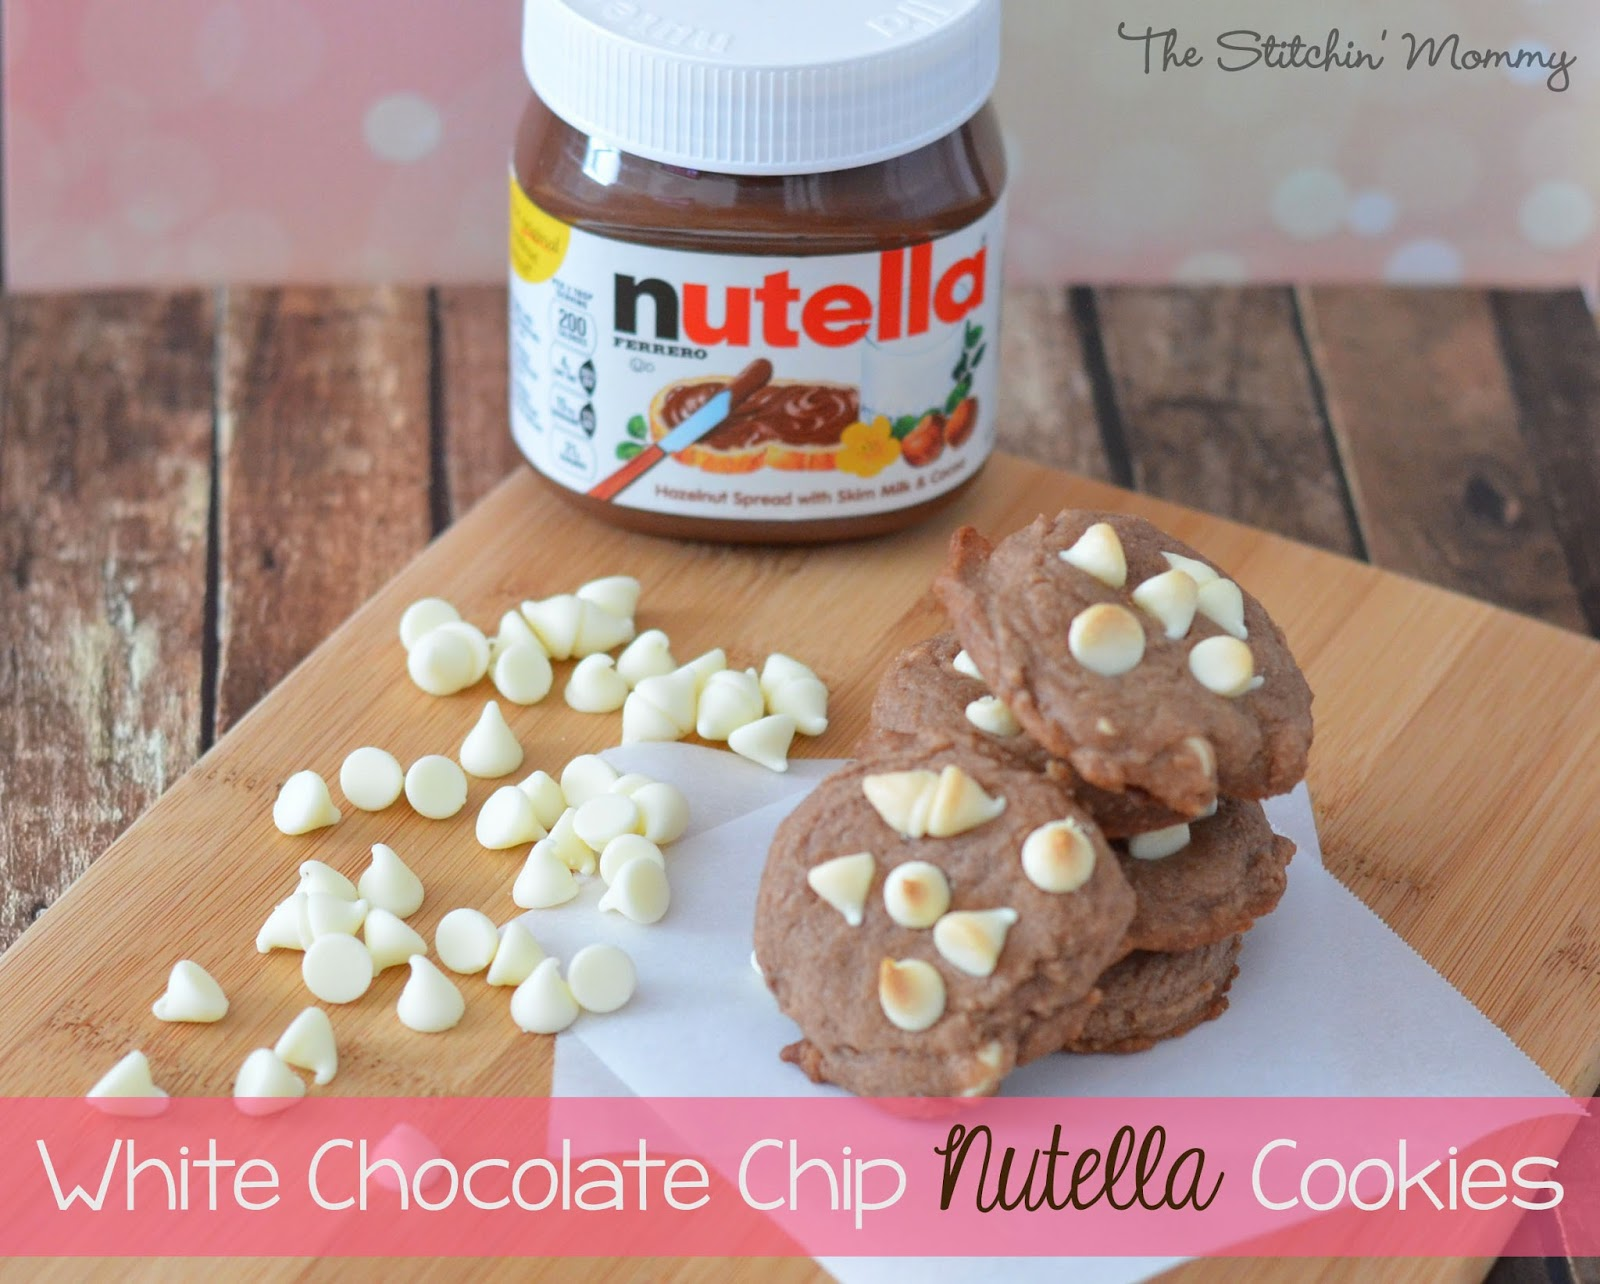 White Chocolate Chip Nutella Cookies by The Stitchin' Mommy http://www.thestitchinmommy.com